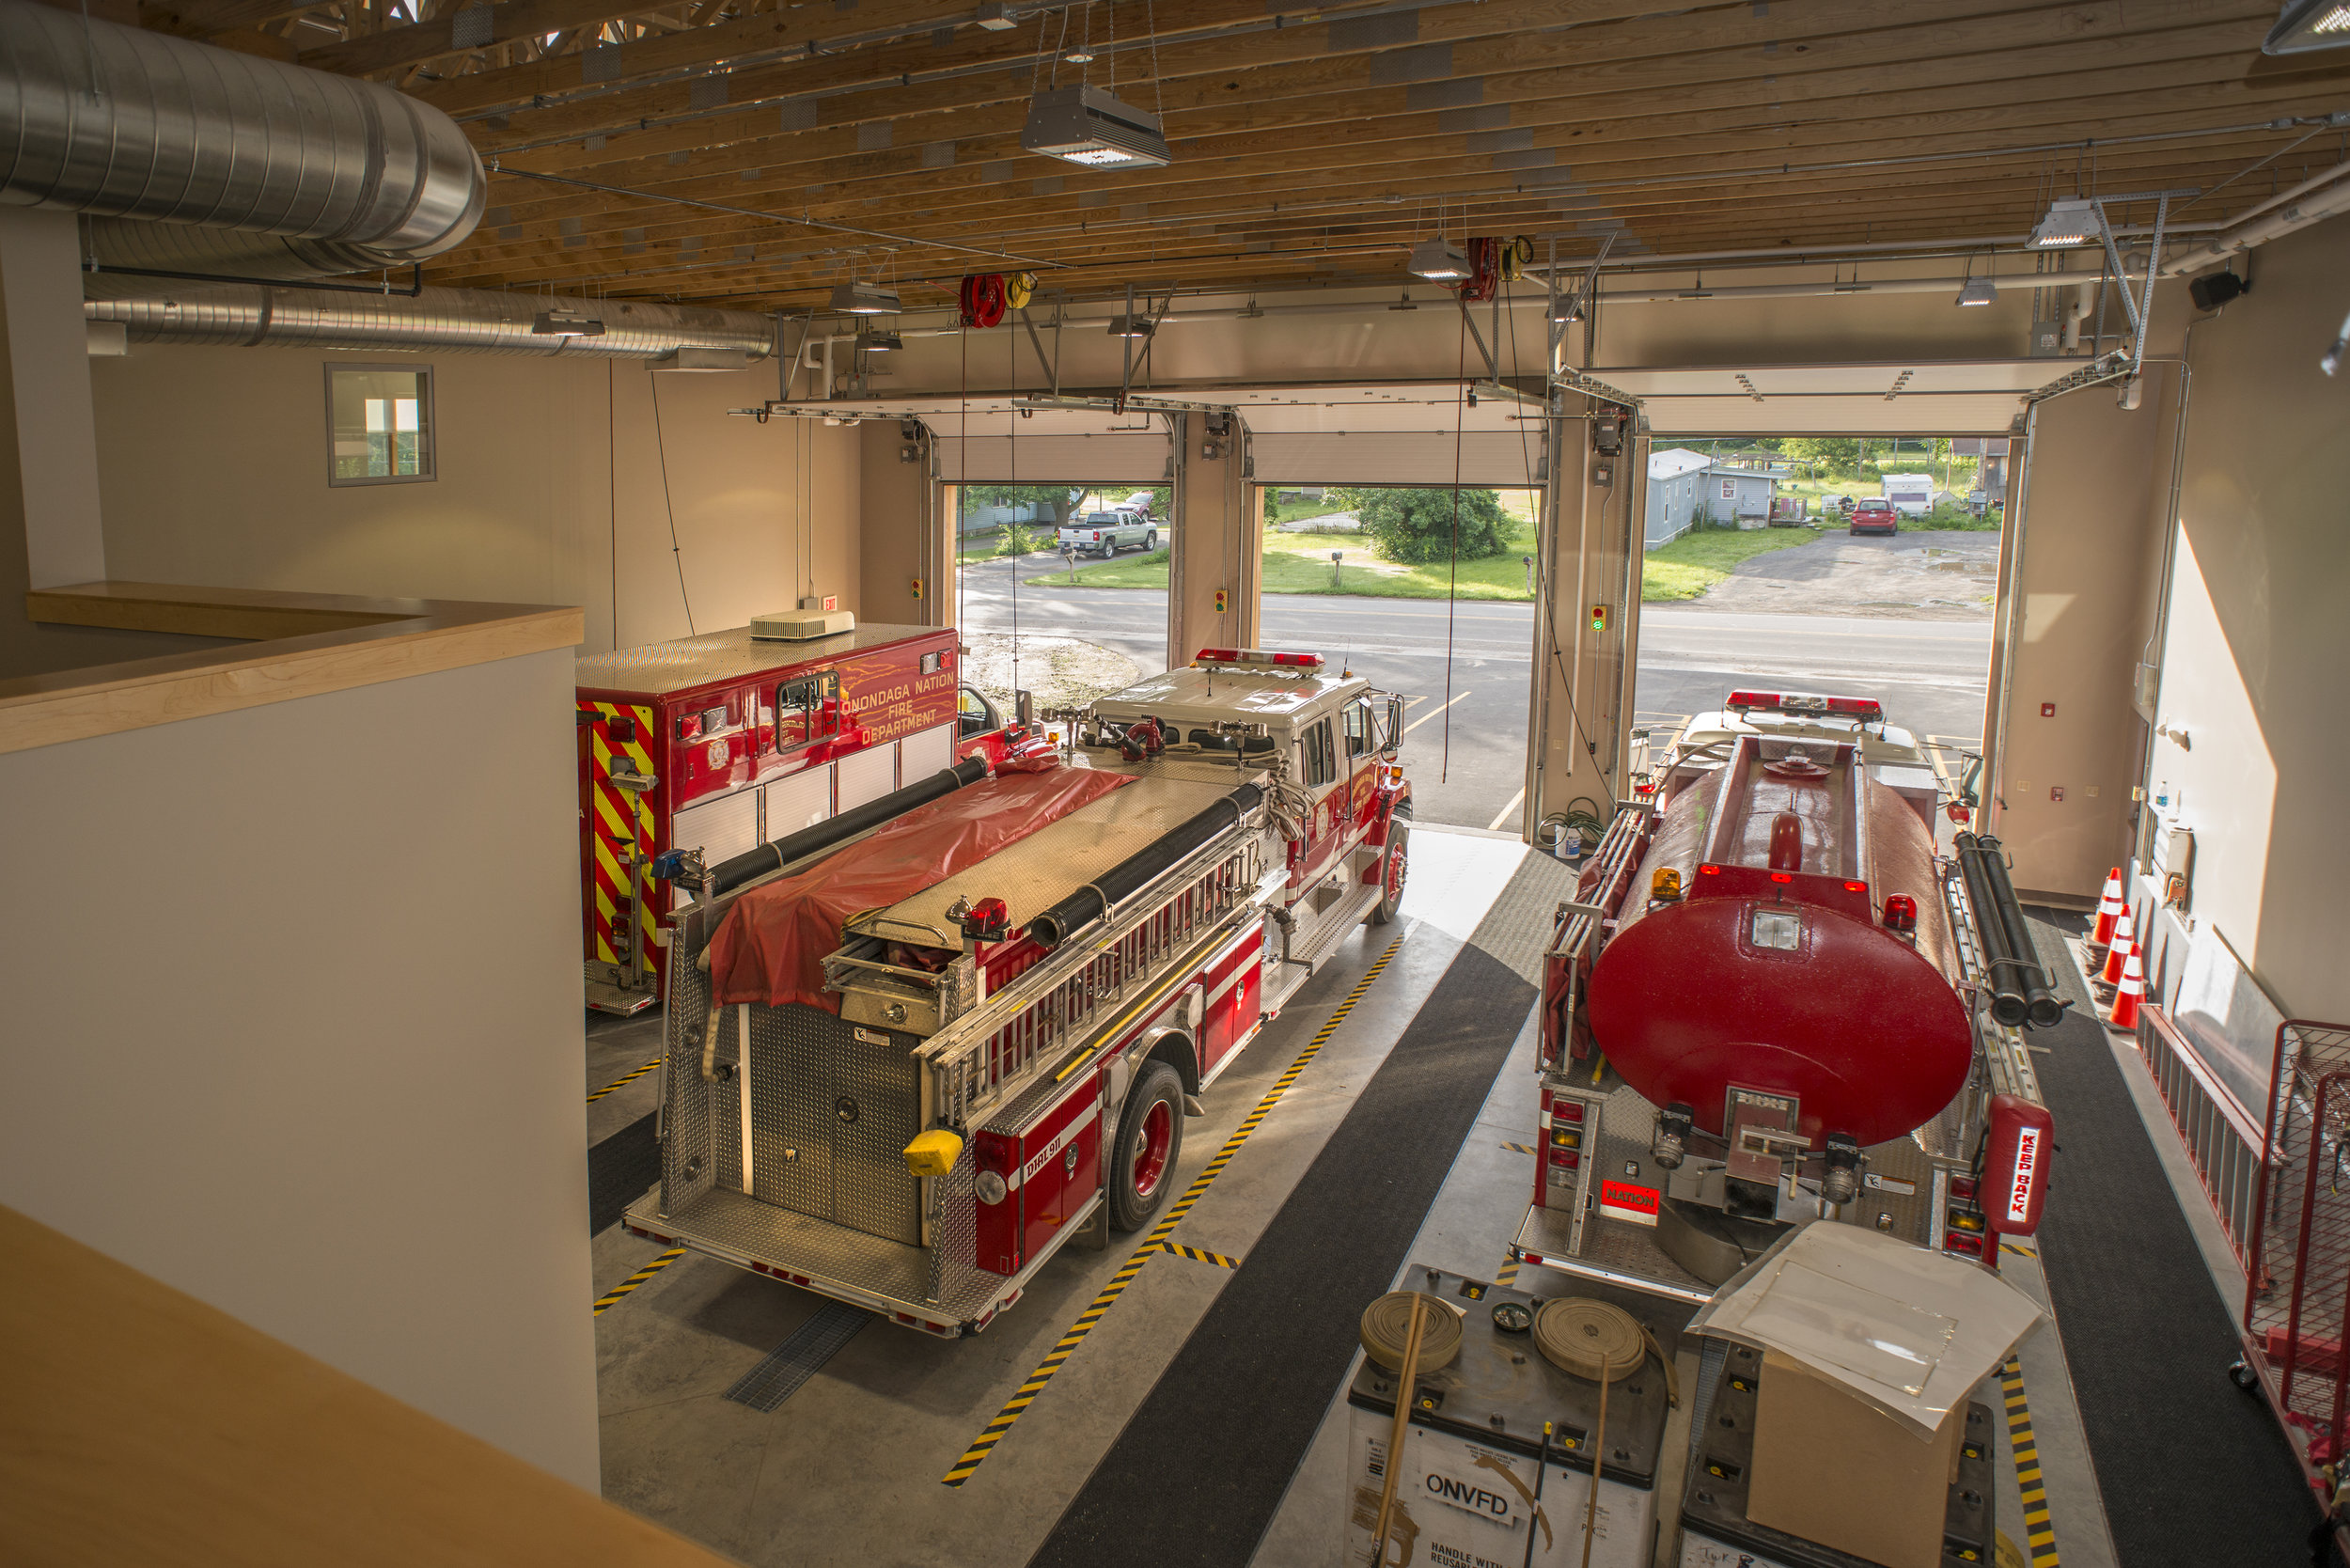 AshleyMcGraw_FireStation_04